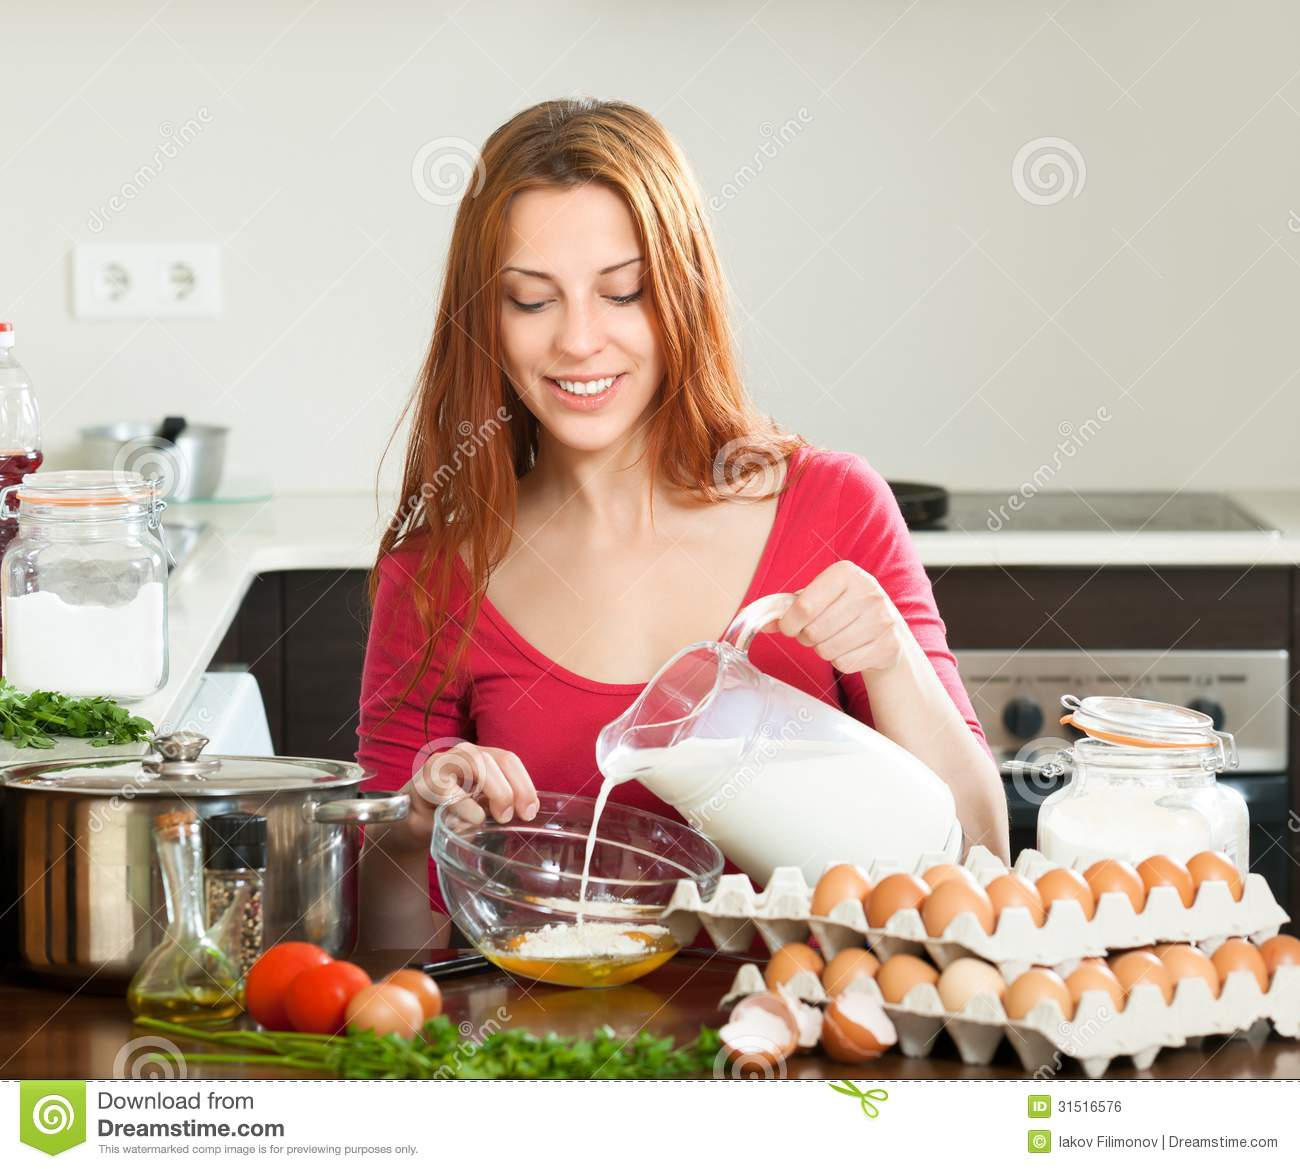 woman in red making dough or omlet in kitchen stock photo image of caucasian omelet 31516576